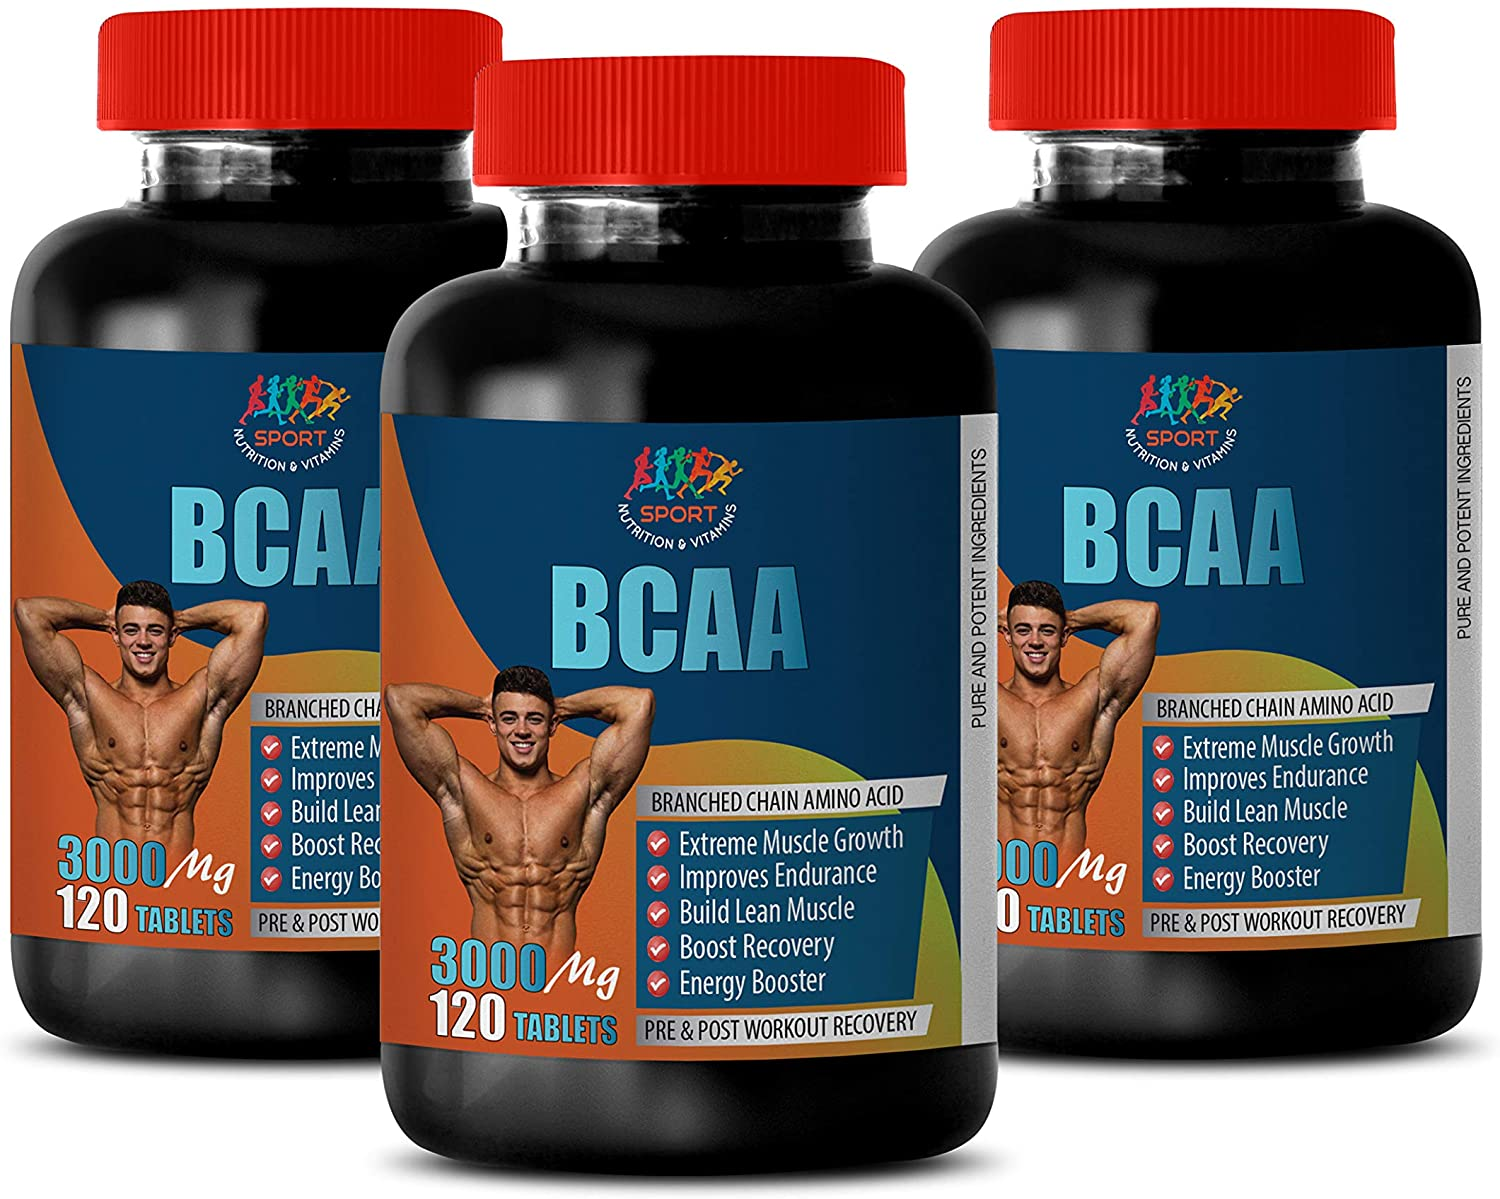 Muscle gain pre Workout - BCAA 3000MG - PRE and Post Workout Recovery - Amino acids bcaa Pills - 3 Bottles 360 Tablets